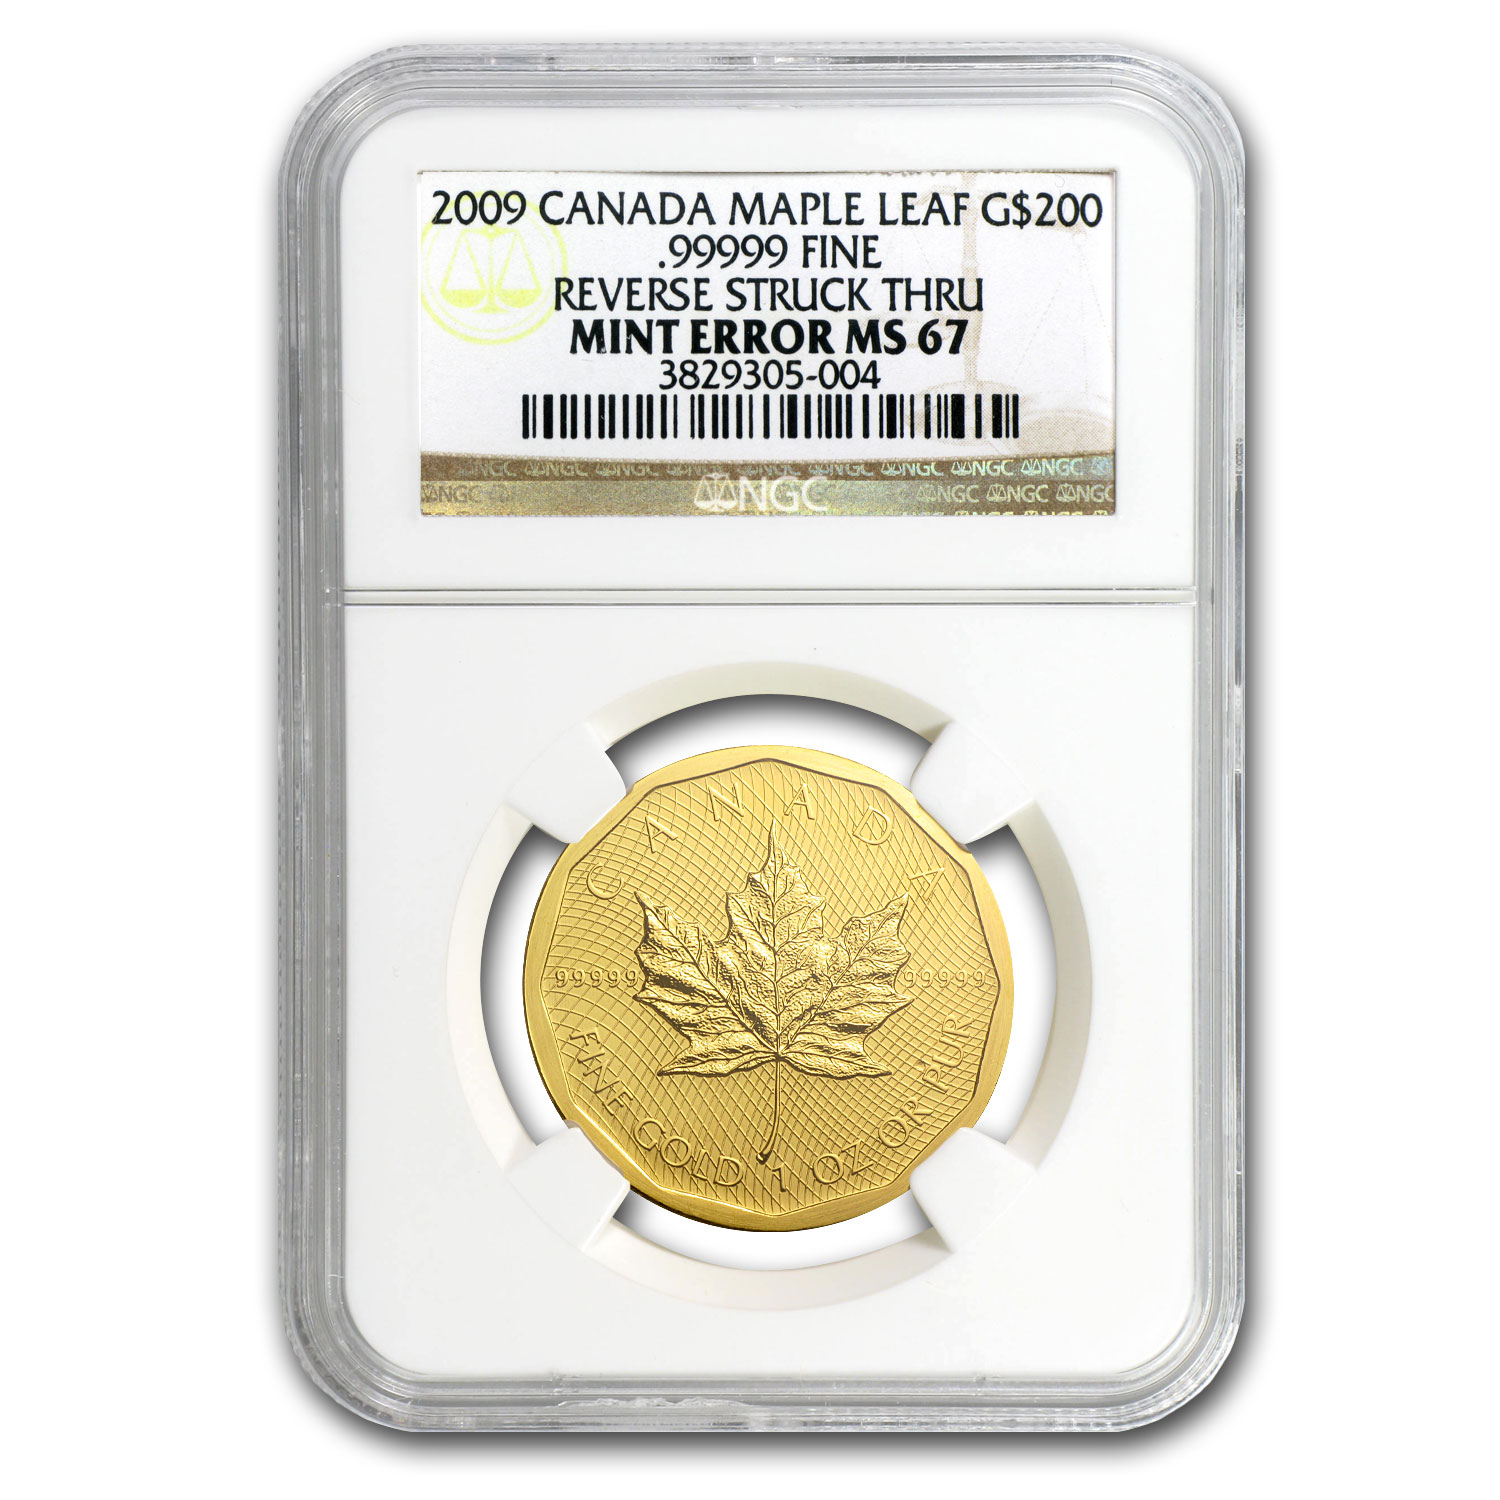 2009 1 oz Gold Canadian Maple Leaf .99999 - MS-67 NGC Mint Error